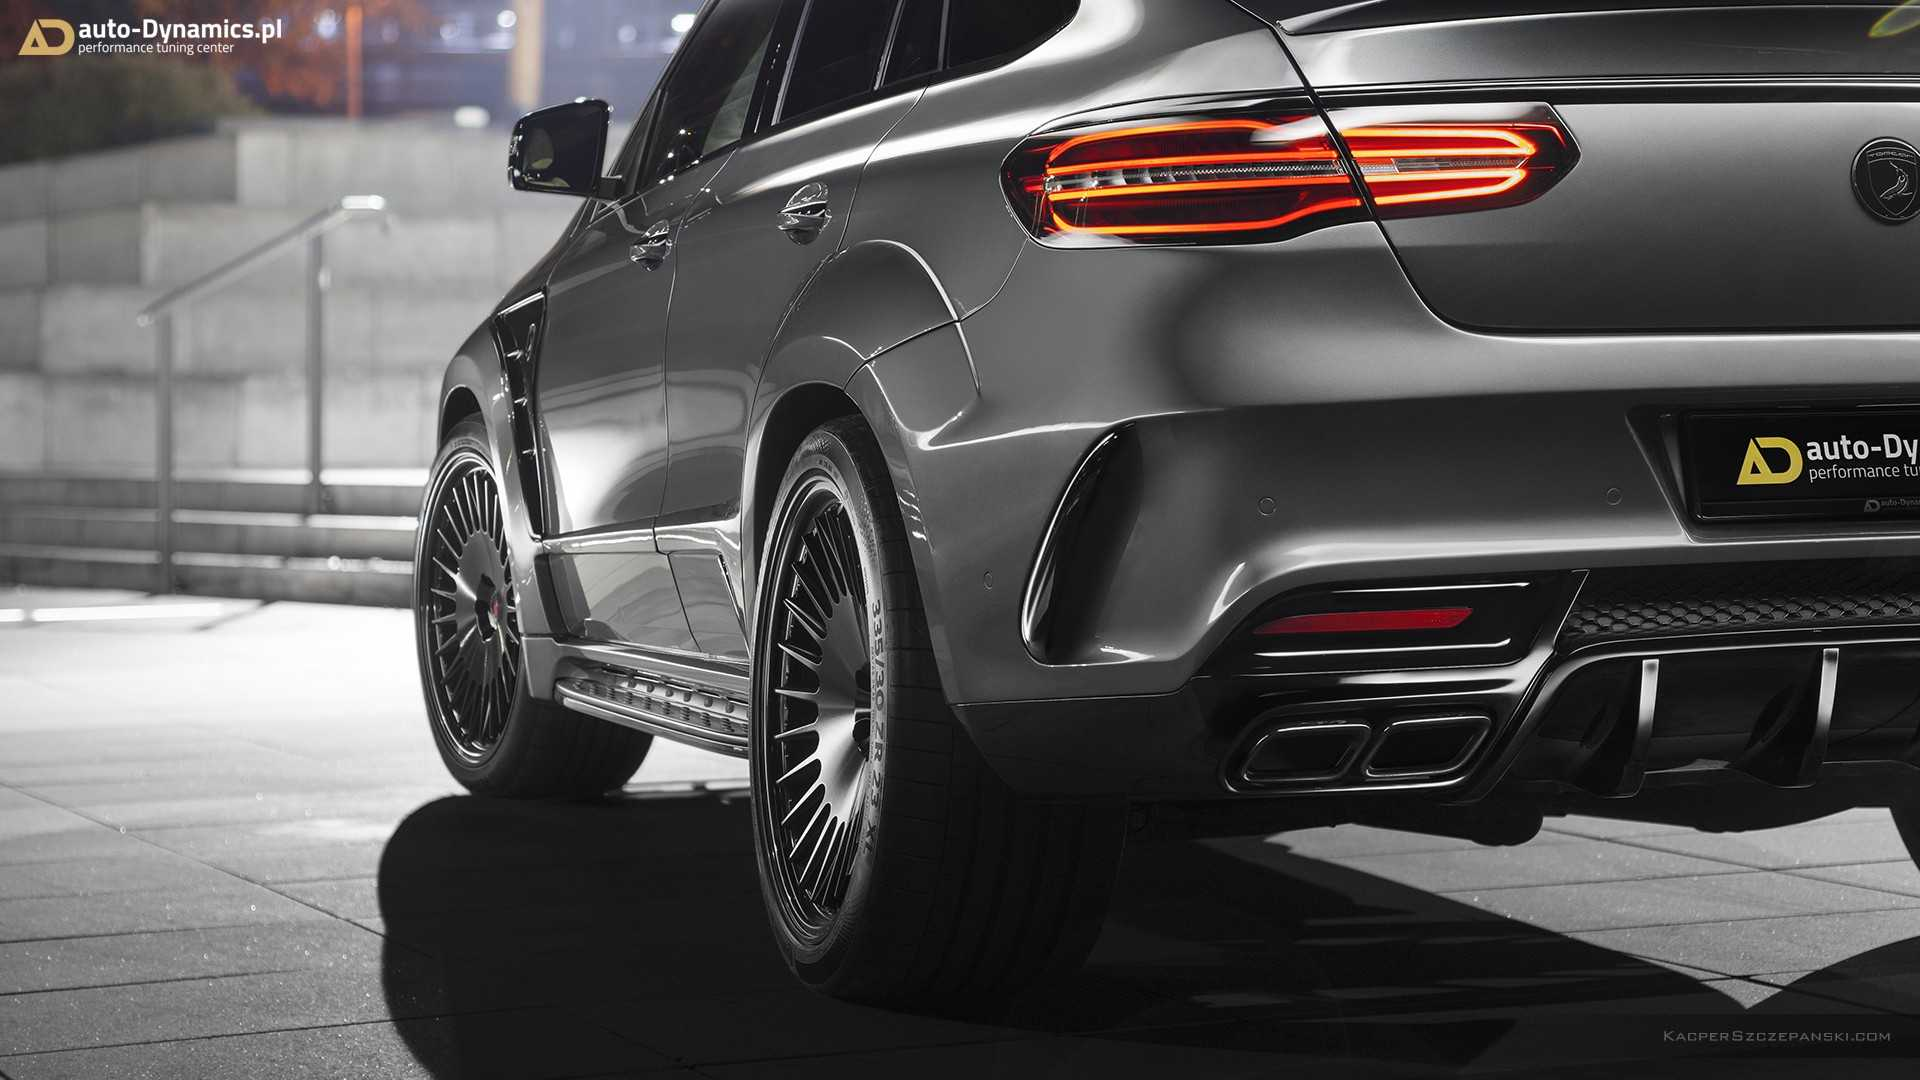 gle-63-s-coupe-project-inferno_9.jpg